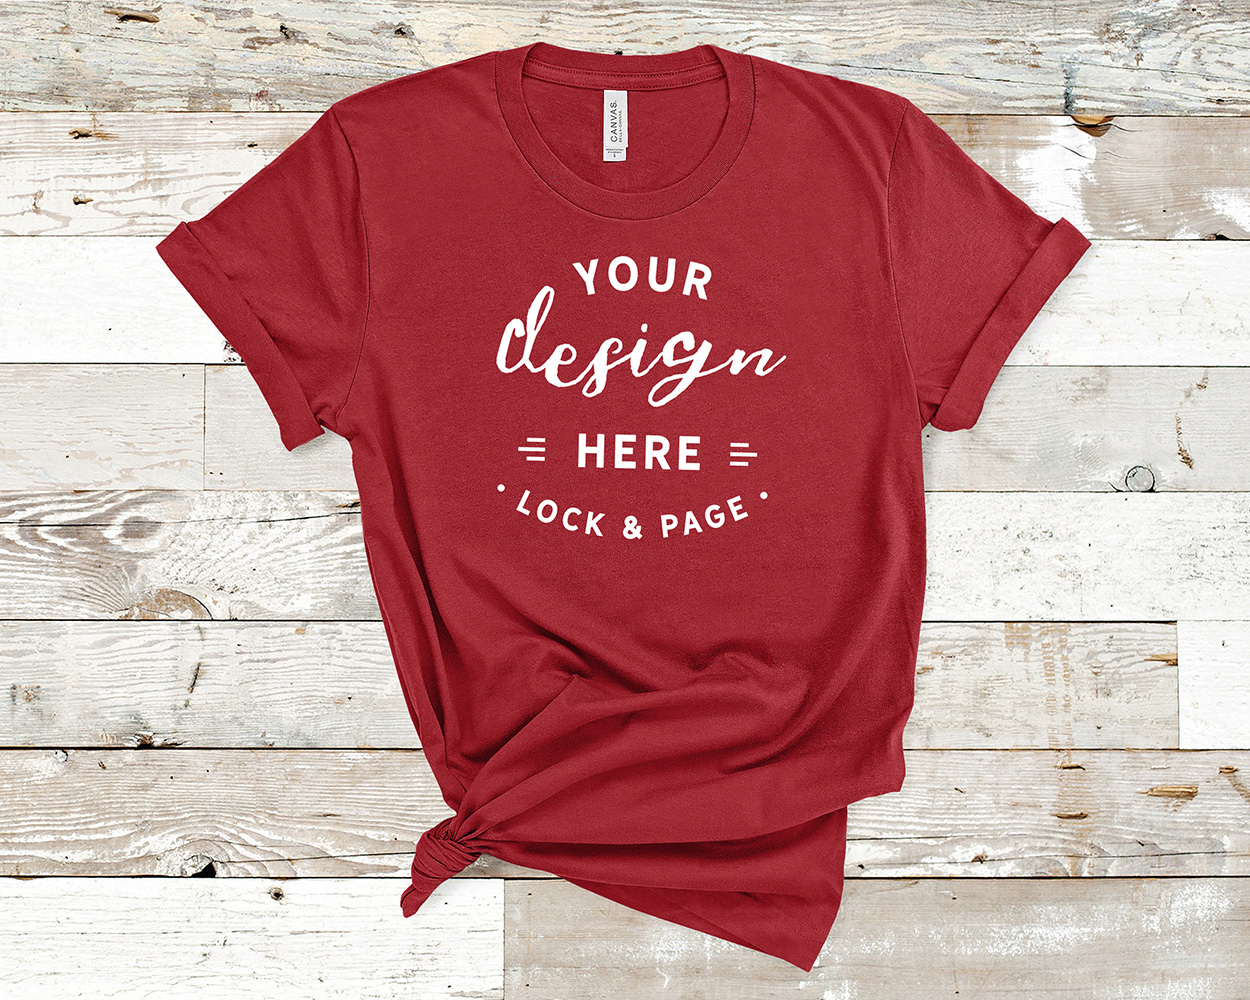 Bella Canvas 3001 Mockup T-Shirt Bundle All Colors On Wood example image 7